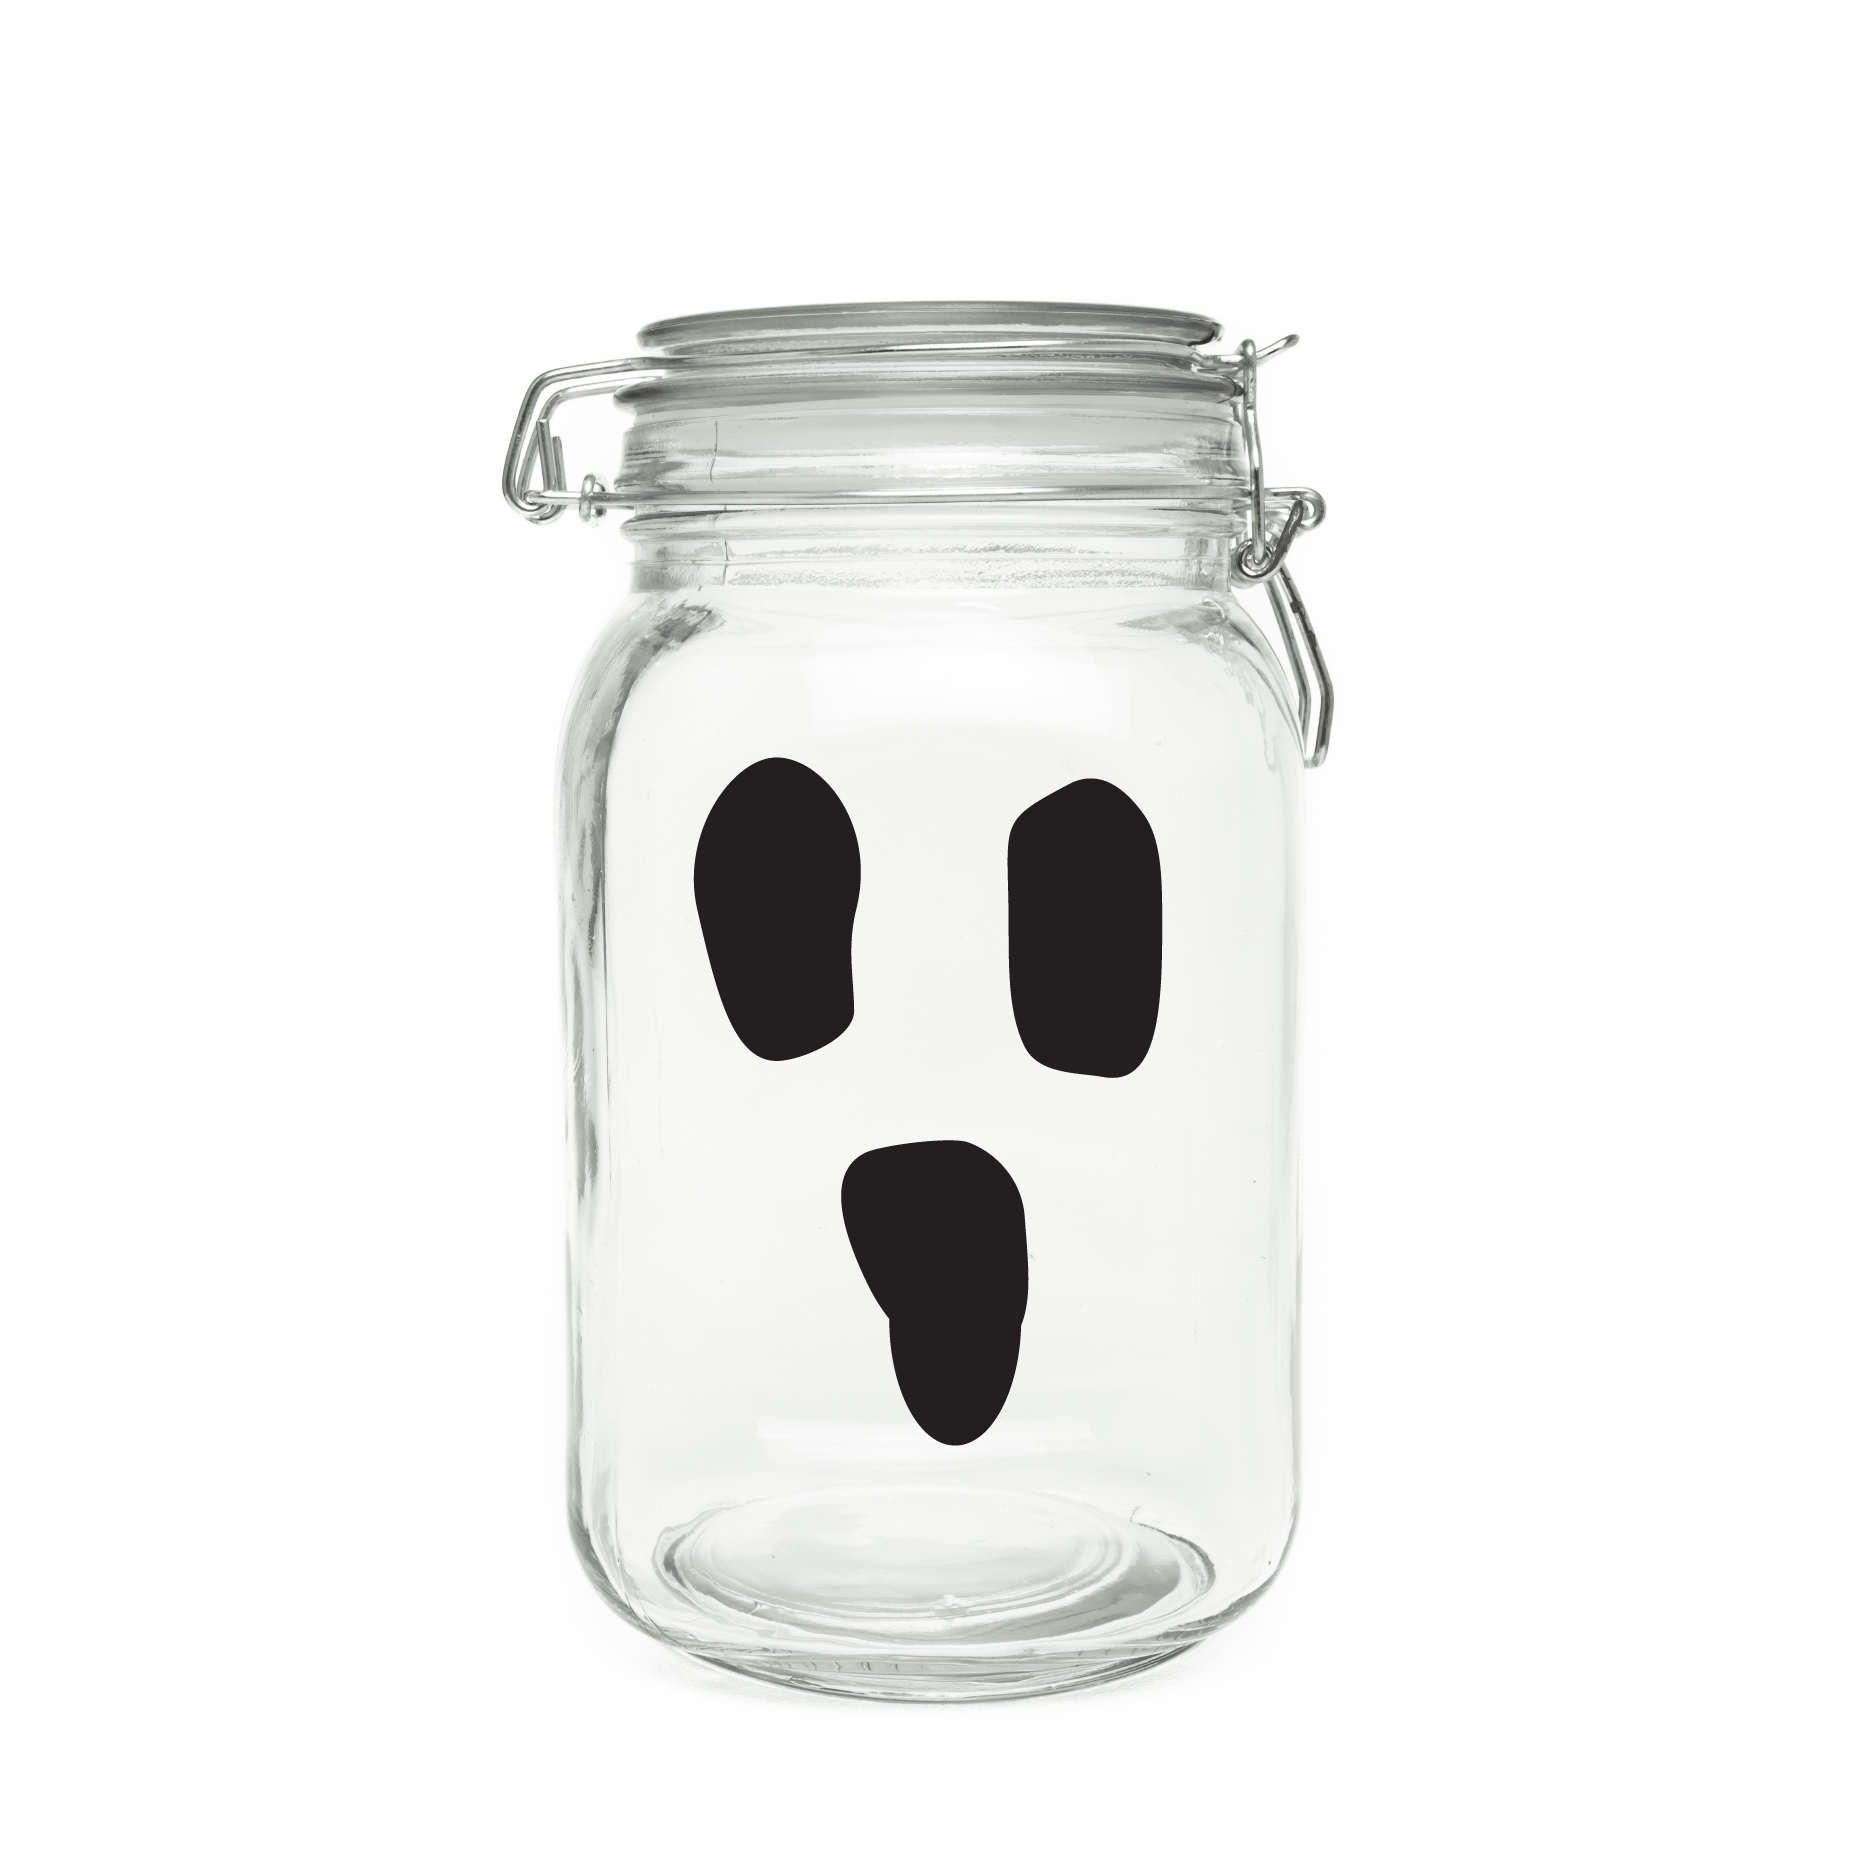 Boo face wall quotes. Transparent decals glass jar image black and white library